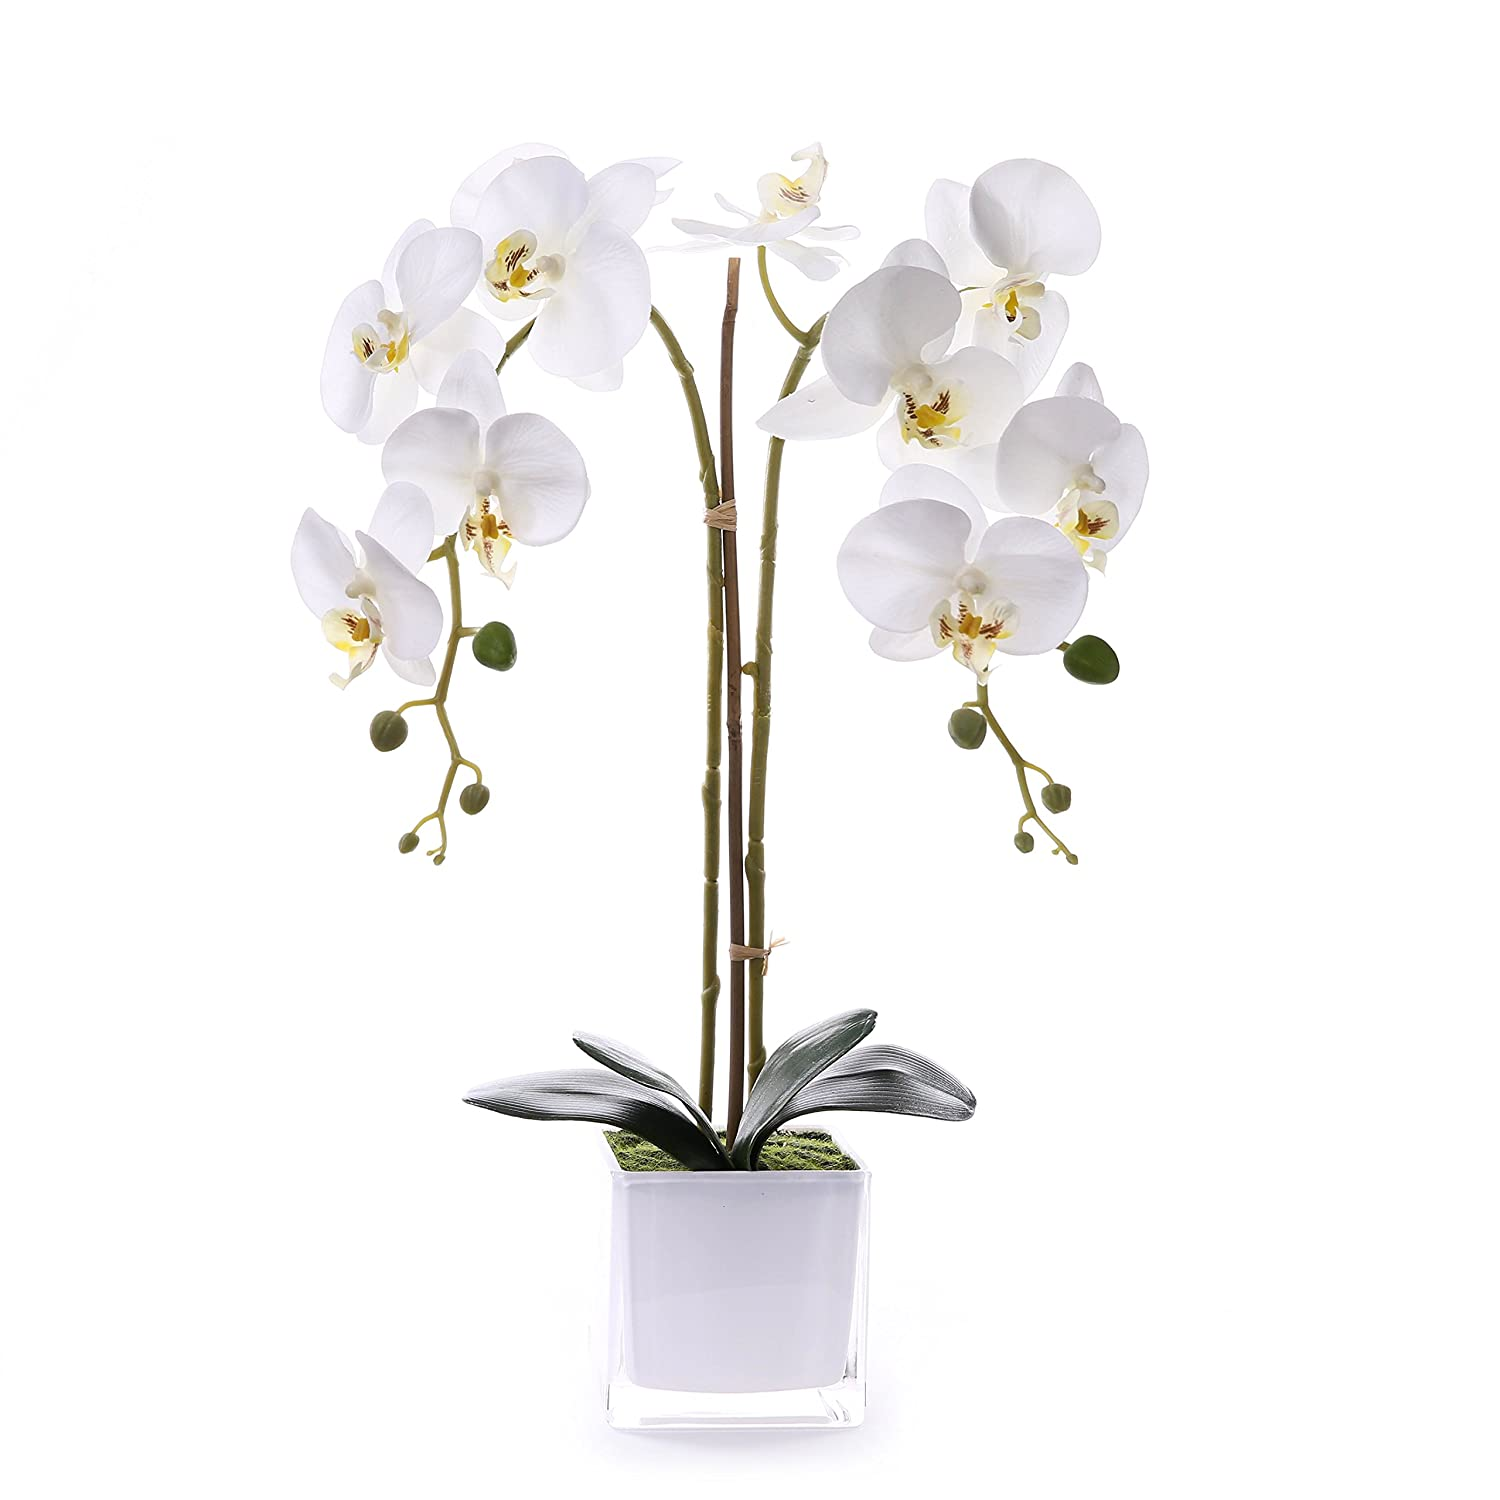 Livilan Silk Butterfly Orchid in Mirrored Vase Tall Artificial Flower Arrangements for Home Room Office Wedding Party Centerpiece Decor, White Dynabit